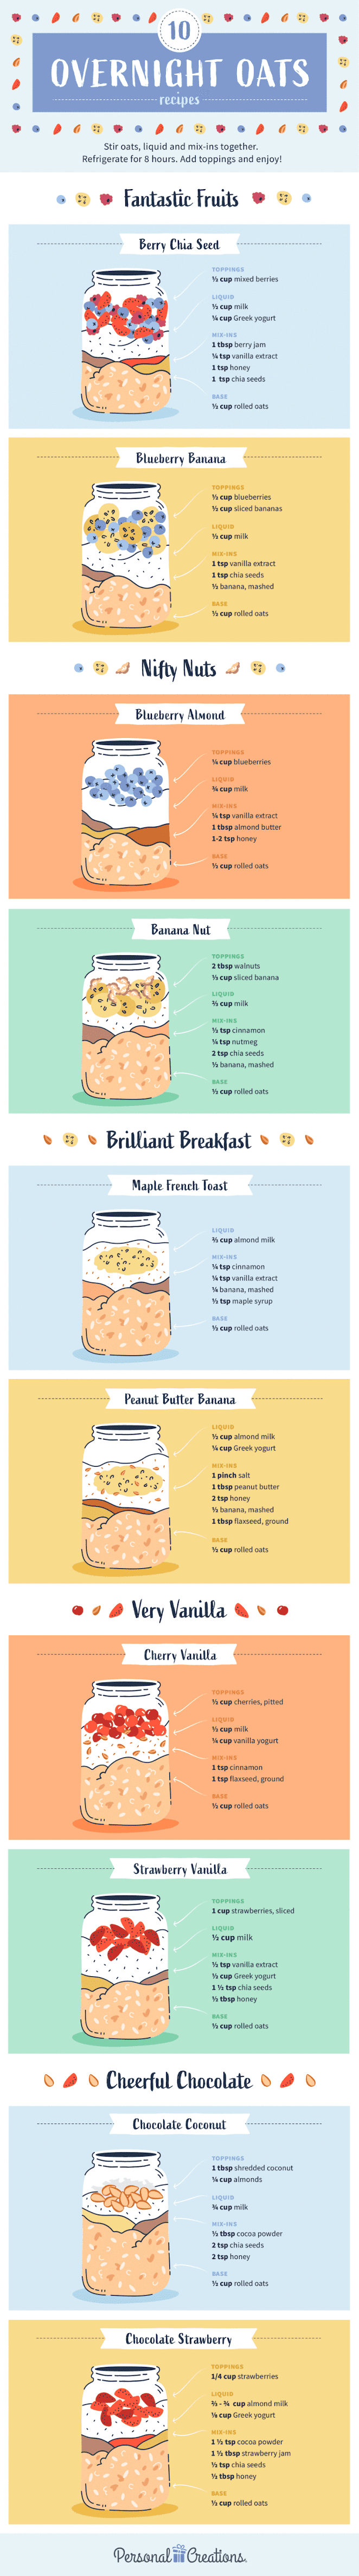 Healthy Overnight Oats Recipes #infographic